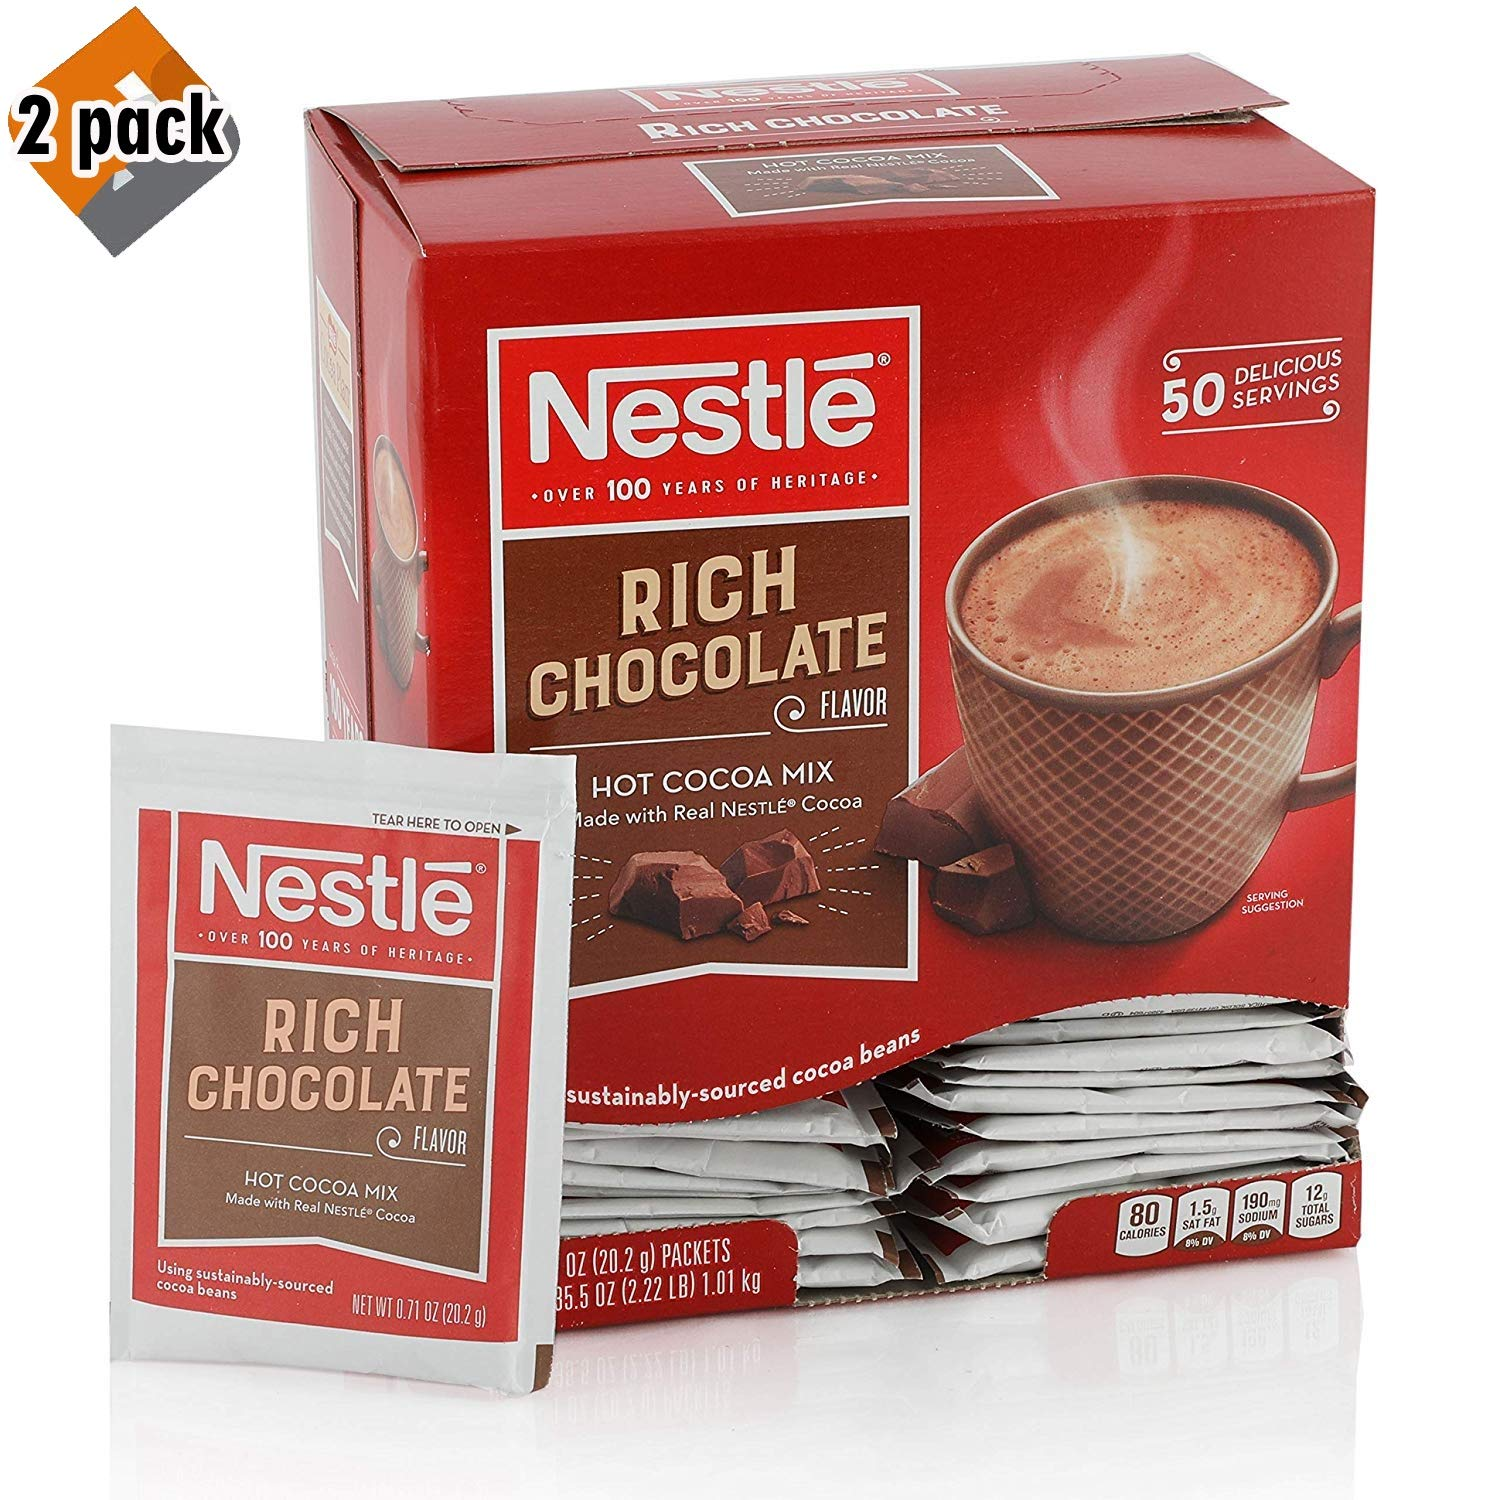 Nestle Hot Chocolate Mix, Hot Cocoa, Rich Chocolate Flavor, Made with Real Cocoa, 50 Count - 2 Pack by Nestle Hot Cocoa